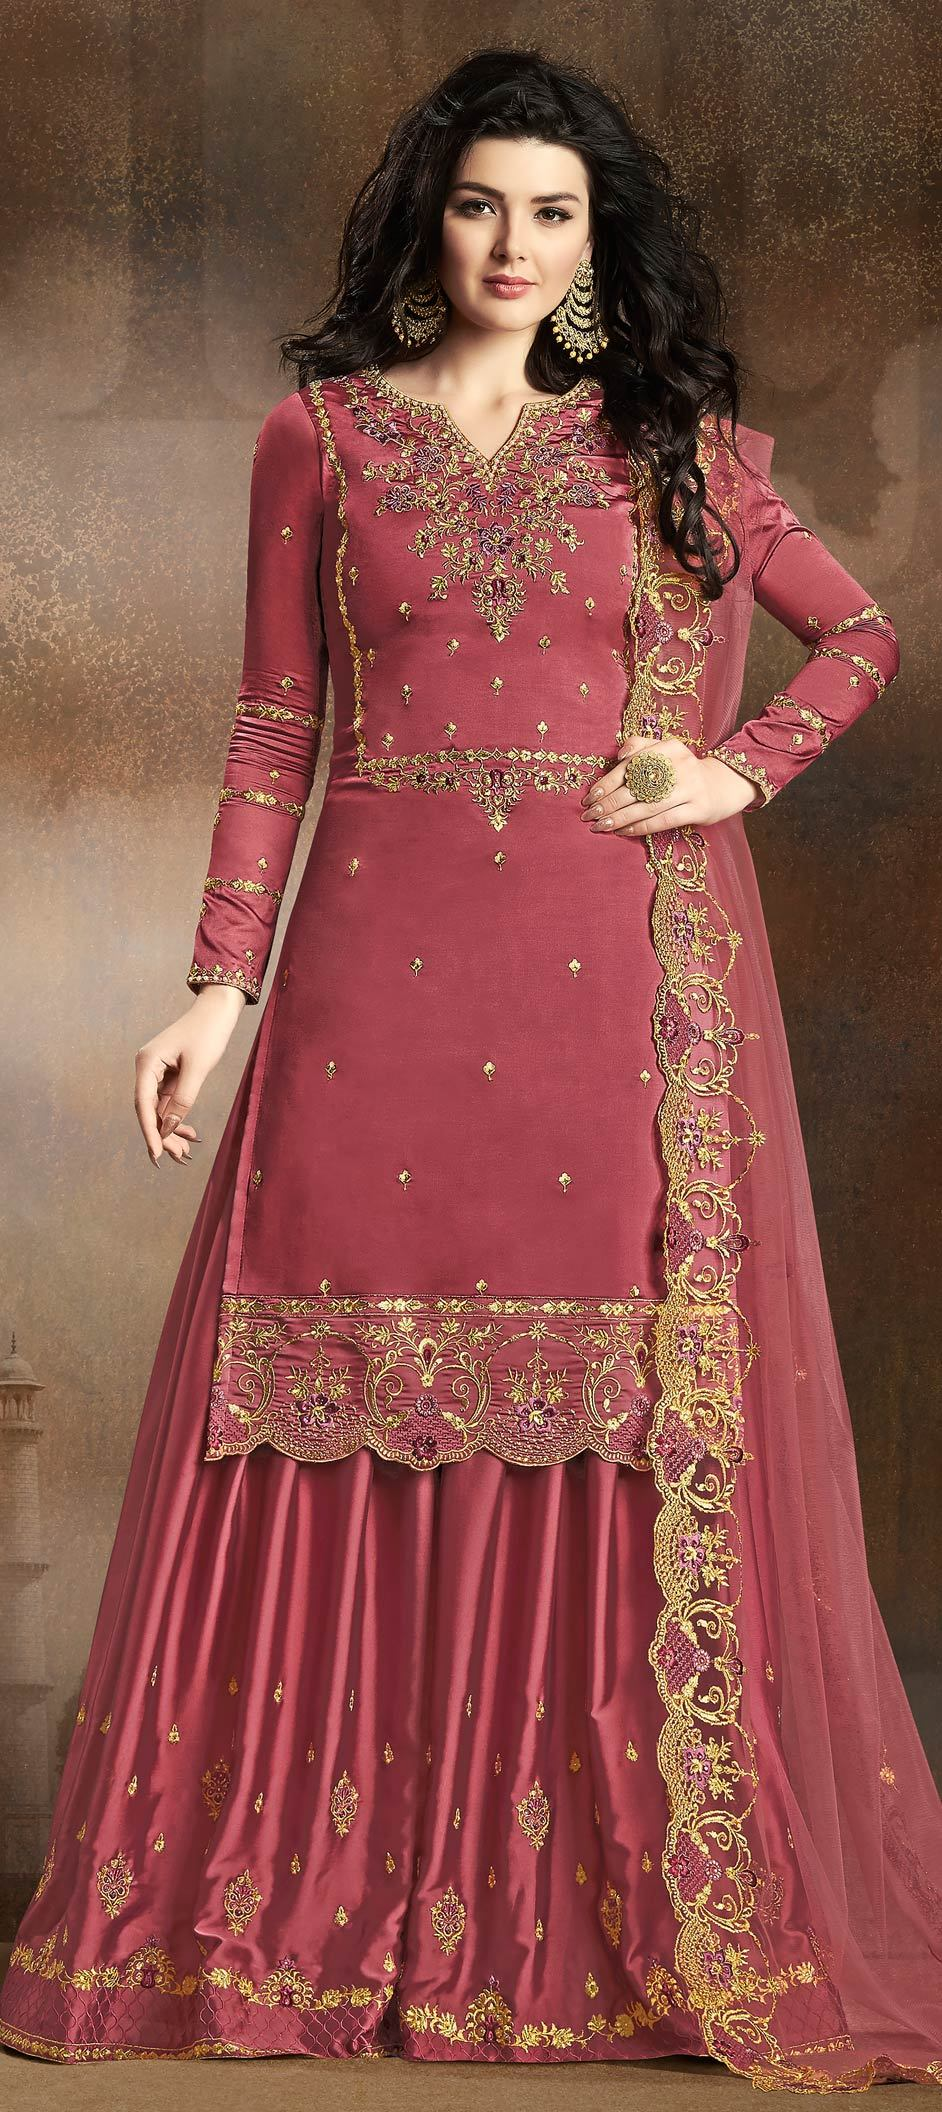 Silk Bollywood Salwar Kameez in Pink and Majenta with Resham work